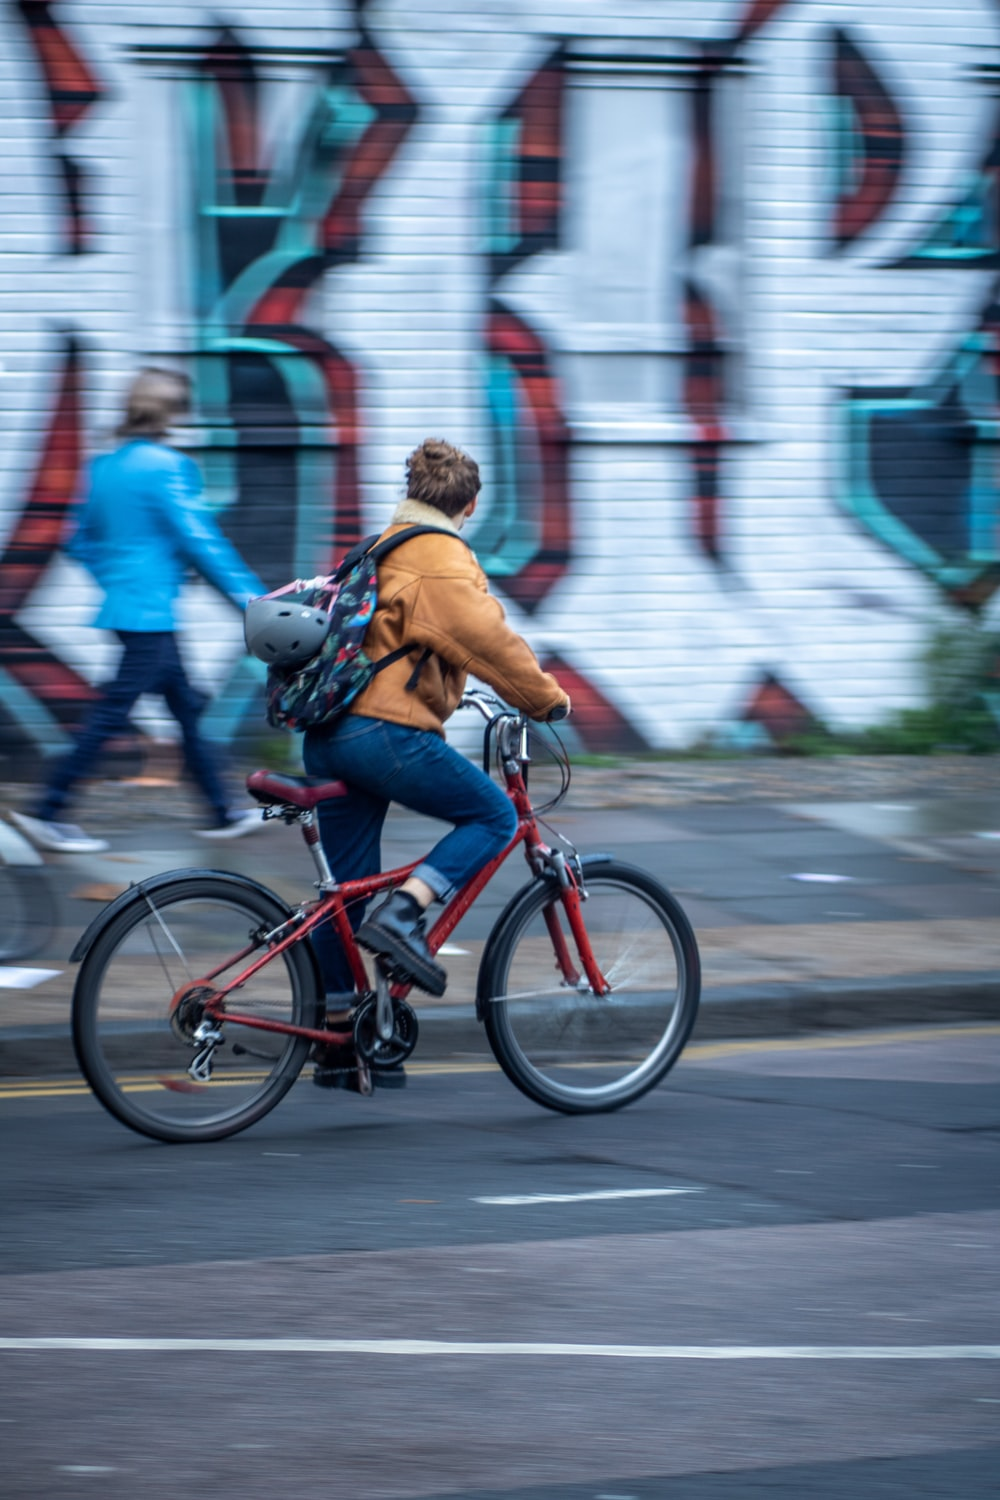 panning photography of person on bike